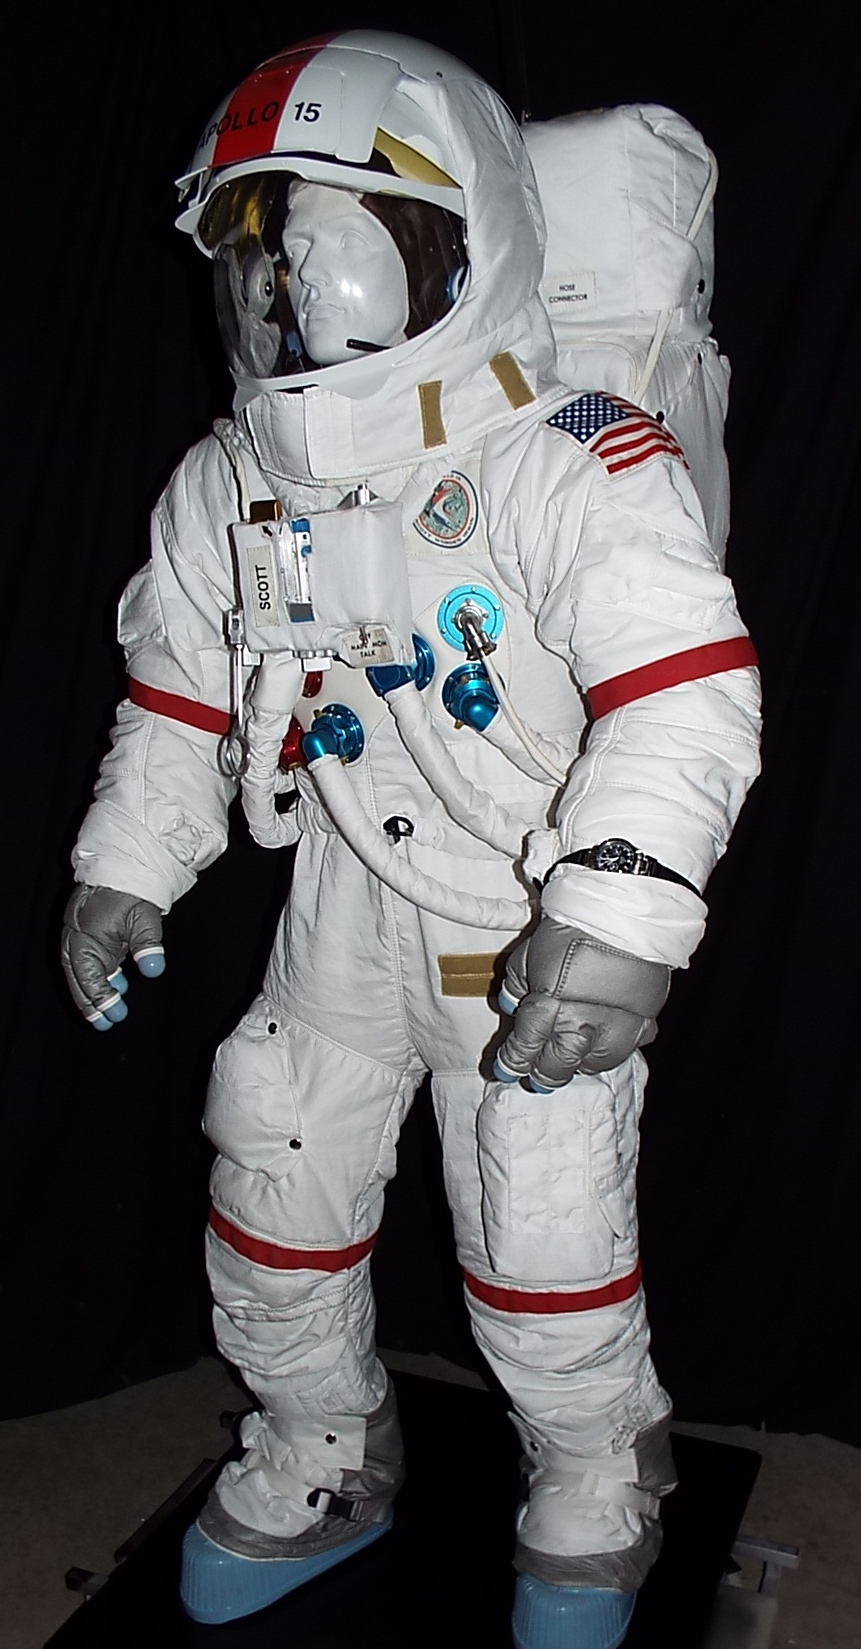 apollo replica space suit - photo #29